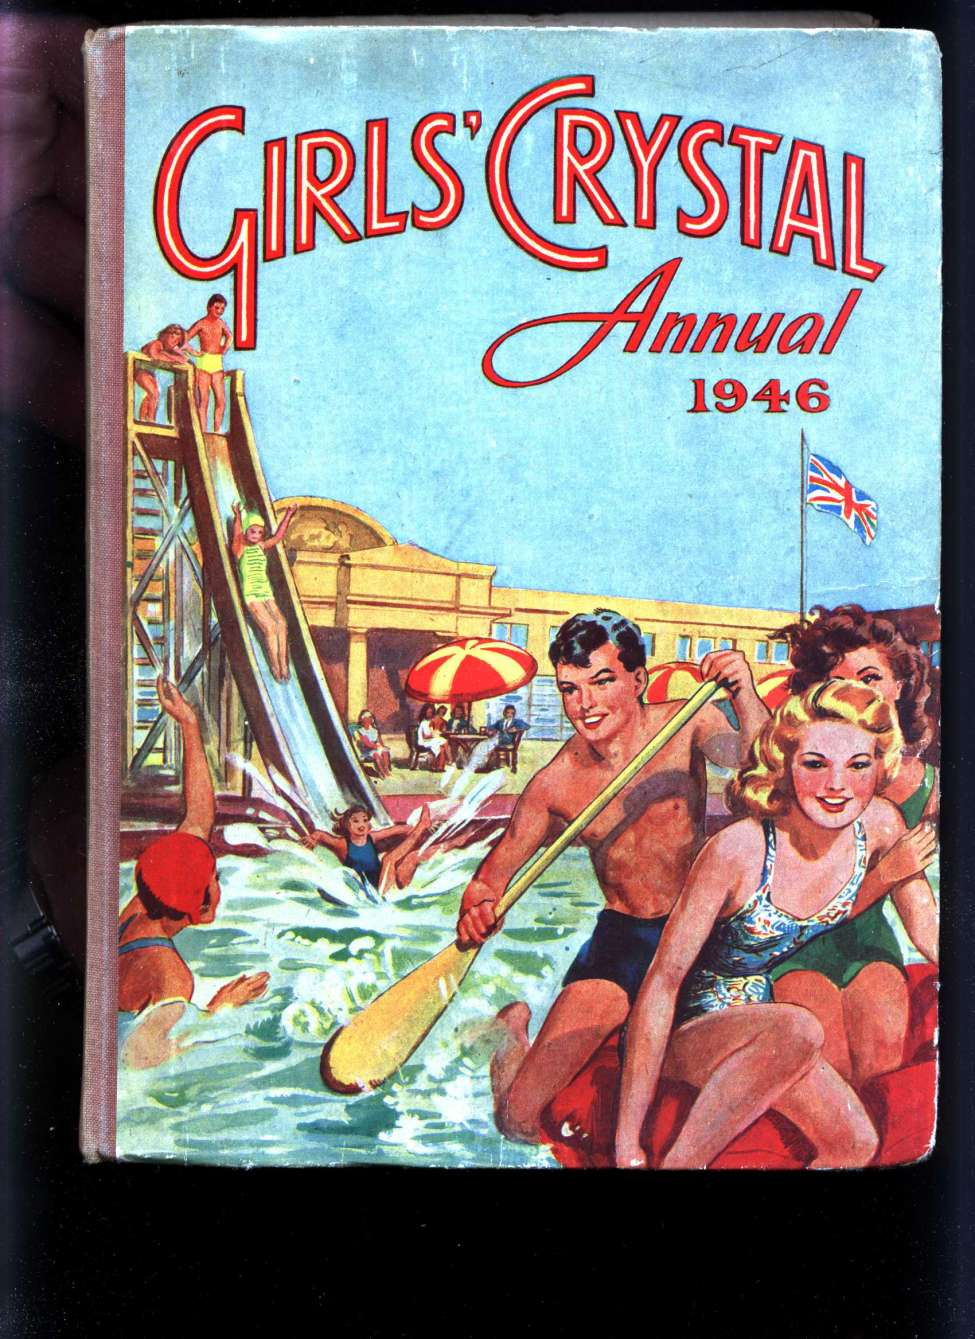 Comic Book Cover For Girls' Crystal Annual 1946